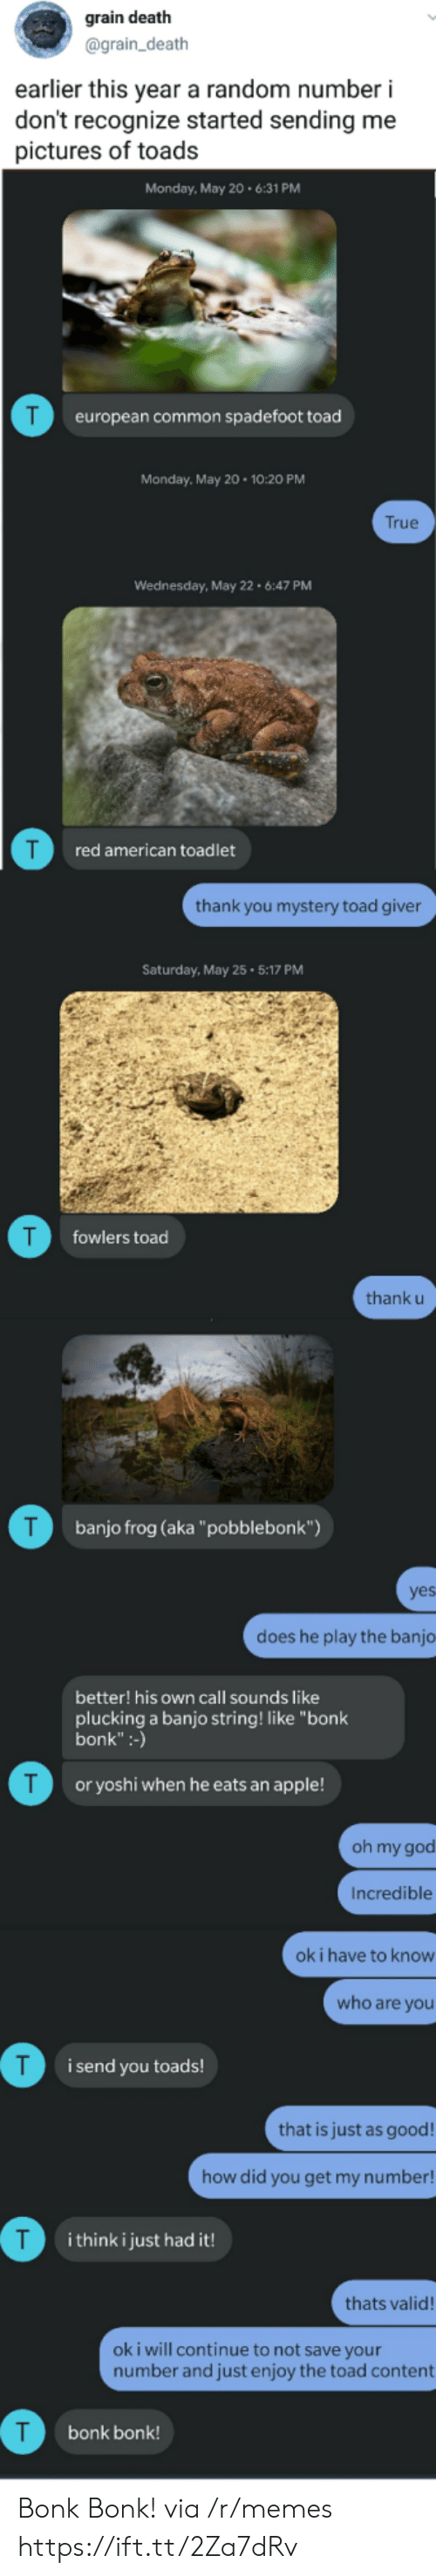 "Apple, God, and Memes: grain death  @grain_death  earlier this year a random number i  don't recognize started sending me  pictures of toads  Monday, May 20.6:31 PM  T  european common spadefoot toad  Monday, May 20 10:20 PM  True  Wednesday, May 22 6:47 PM  red american toadlet  thank you mystery toad giver  Saturday, May 25 5:17 PM  T  fowlers toad  thank u  T  banjo frog (aka""pobblebonk"")  yes  does he play the banjo  better! his own call sounds like  plucking a banjo string! like ""bonk  bonk"":-)  T  or yoshi when he eats an apple!  oh my god  Incredible  ok i have to know  who are you  i send you toads!  that is just as good!  how did you get my number!  T  i think i just had it!  thats valid!  oki will continue to not save your  number and just enjoy the toad content  bonk bonk! Bonk Bonk! via /r/memes https://ift.tt/2Za7dRv"